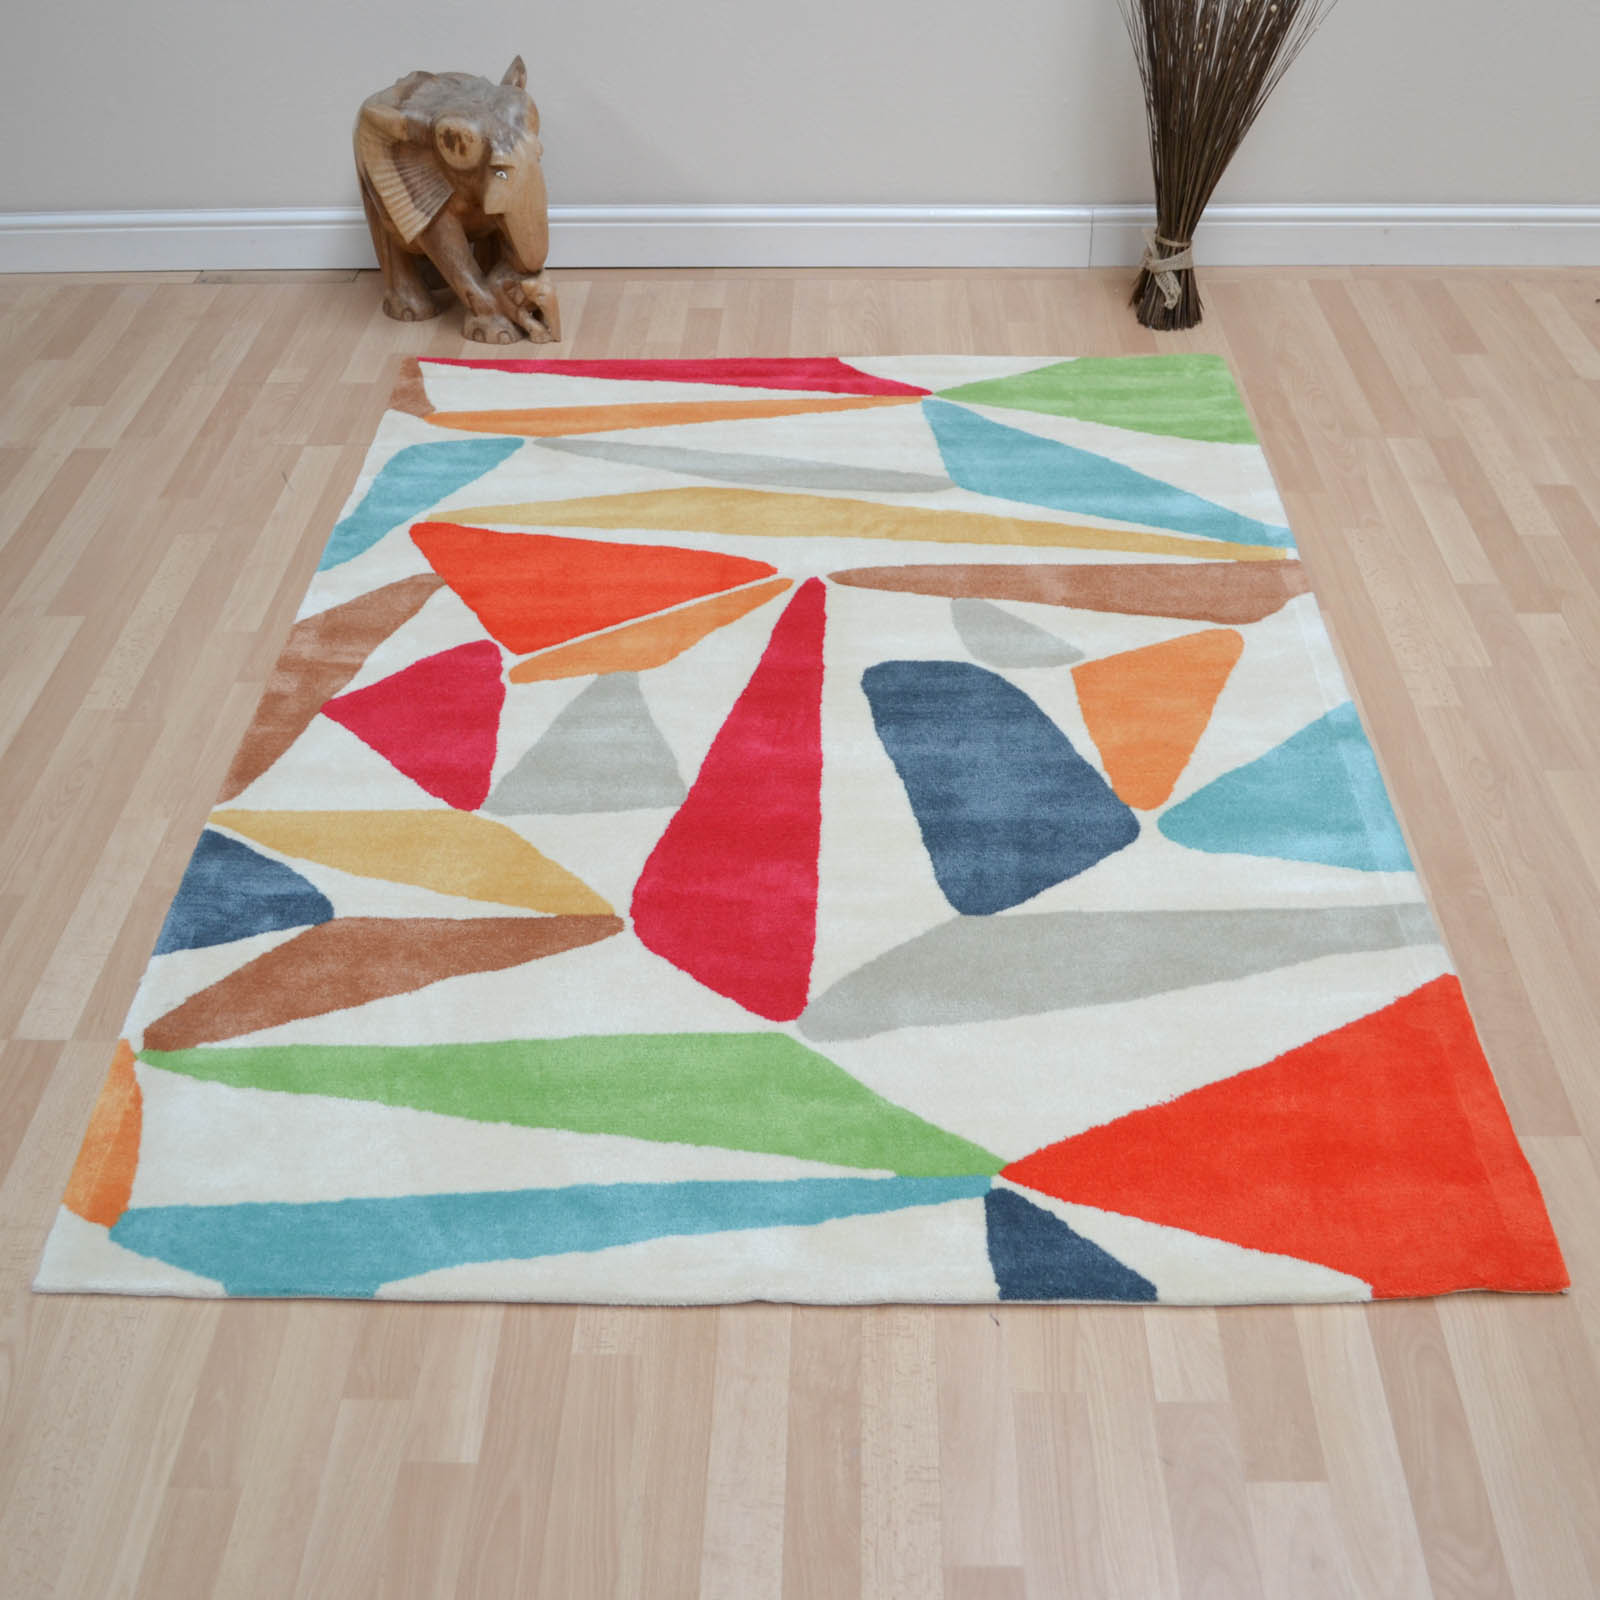 Xian Triangle Rugs 77600 by Brink and Campman